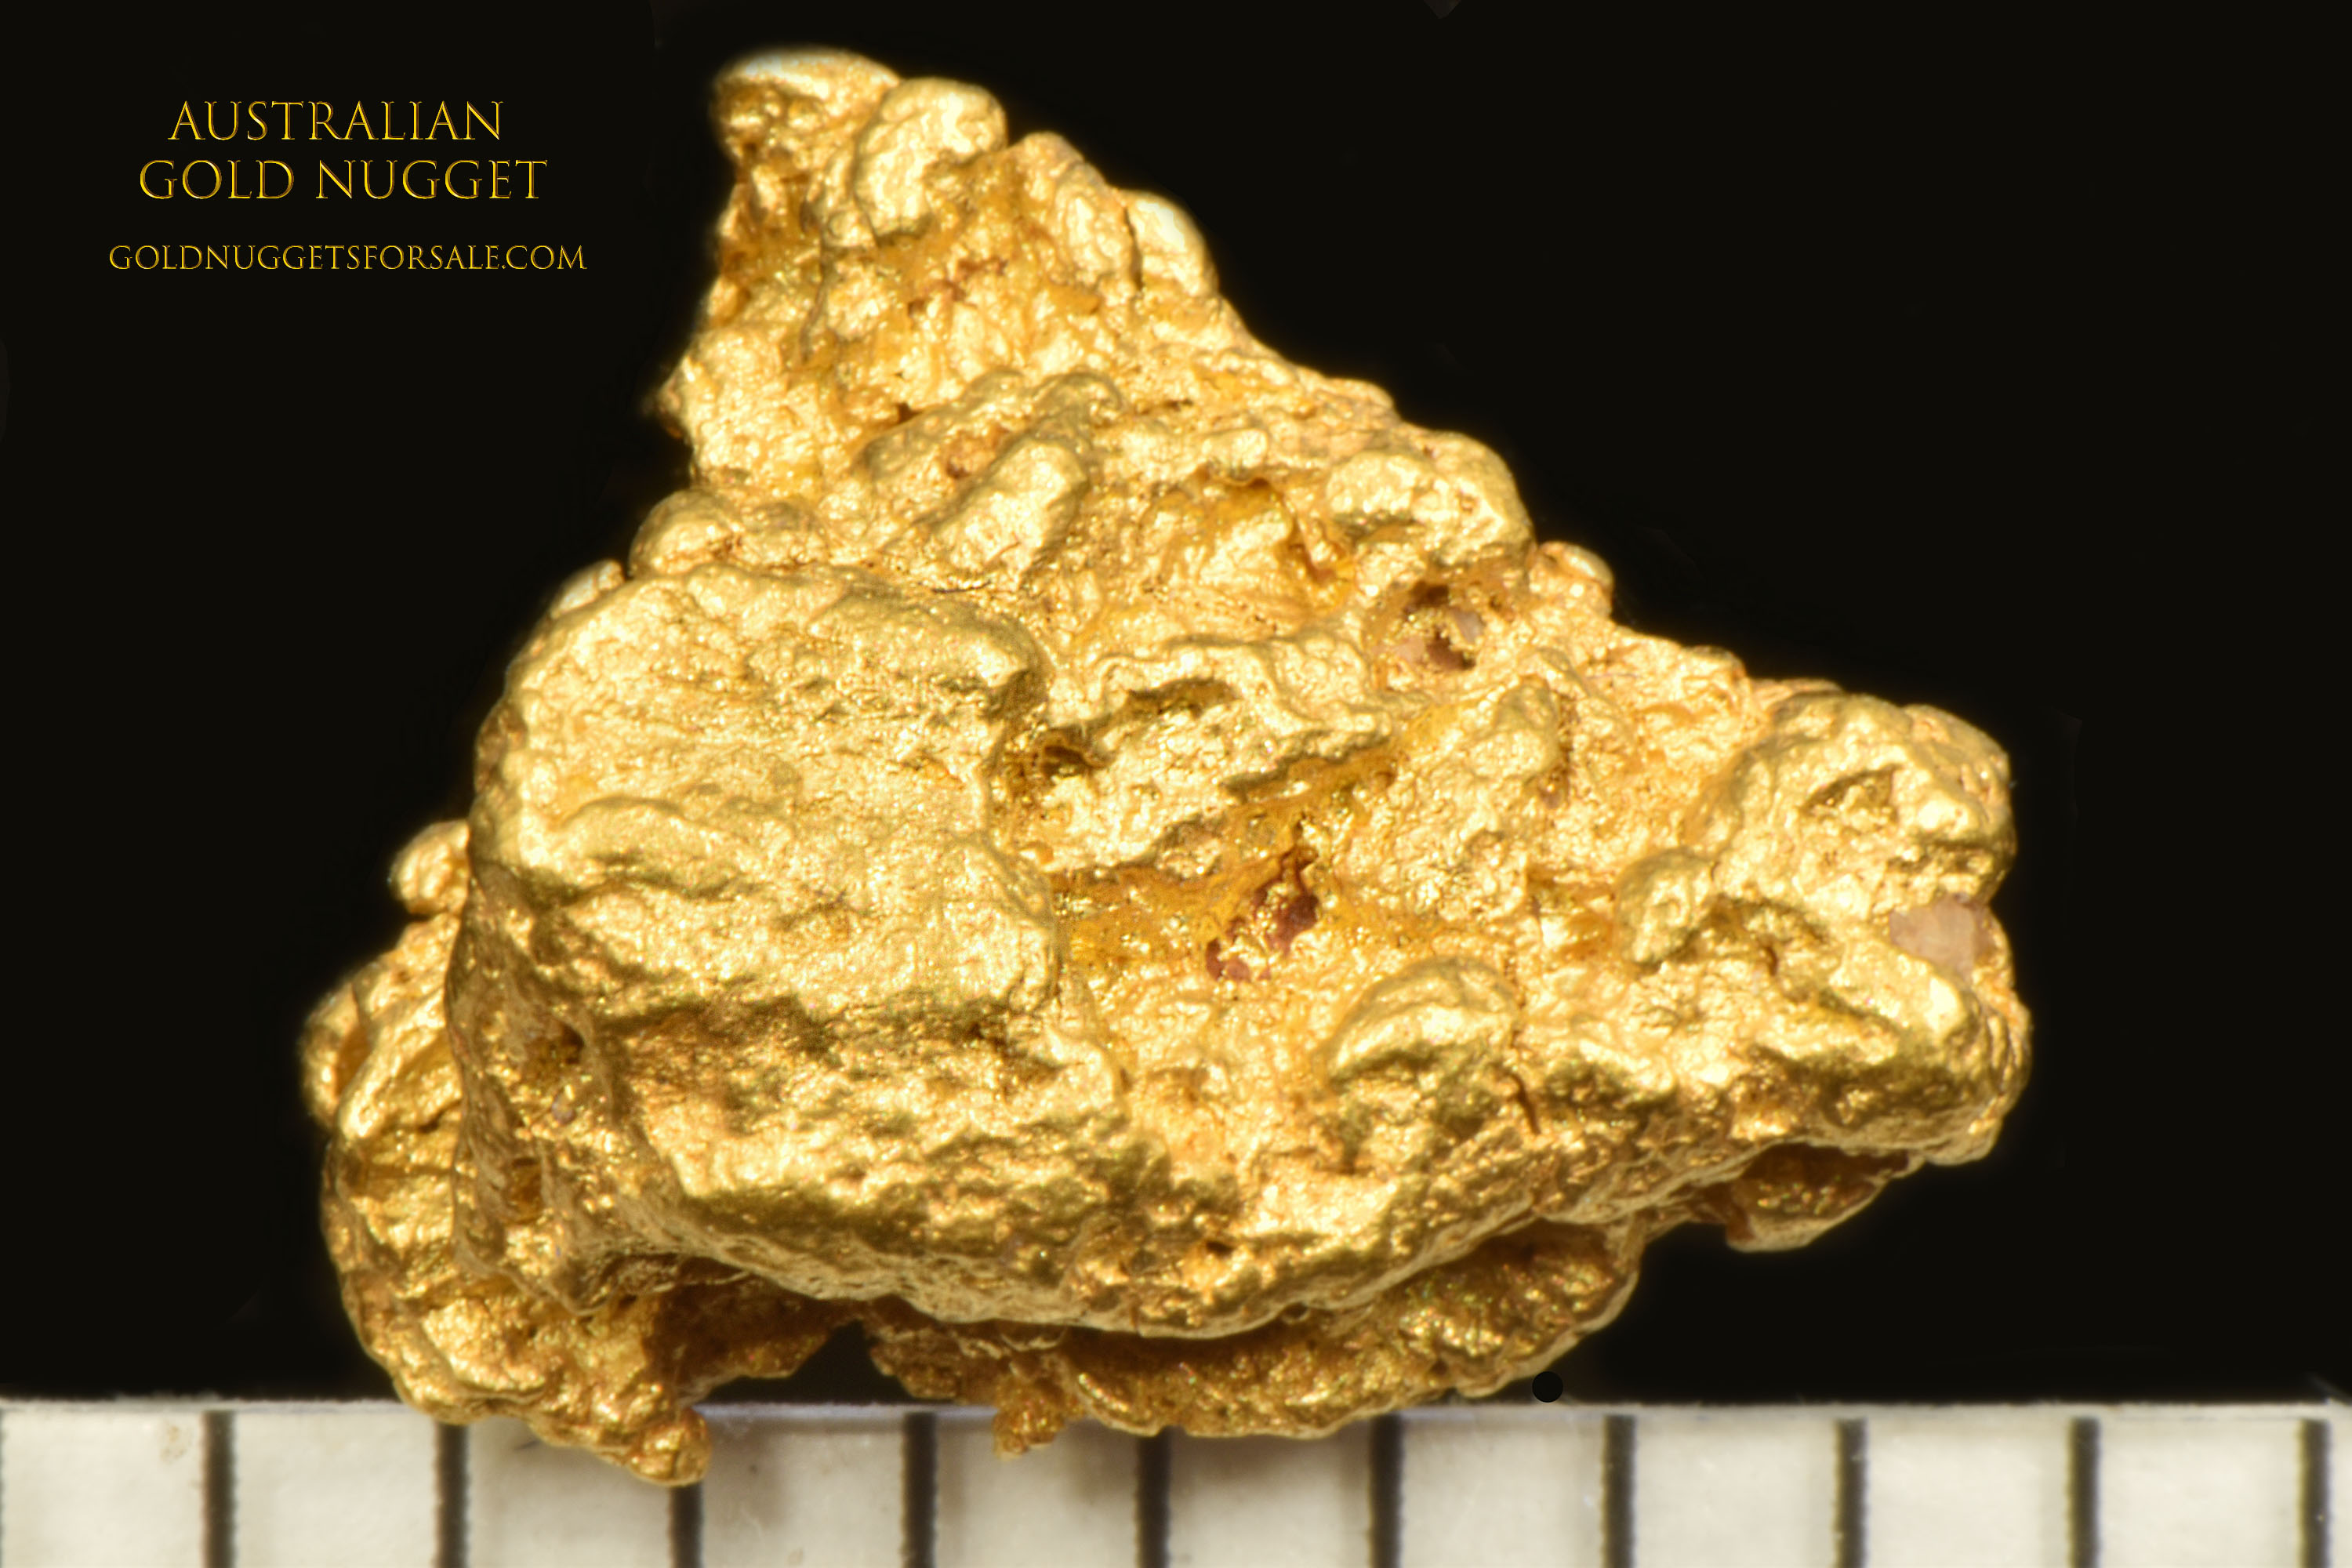 """Triangle"" Shaped Jewelry Grade Australian Gold Nugget"